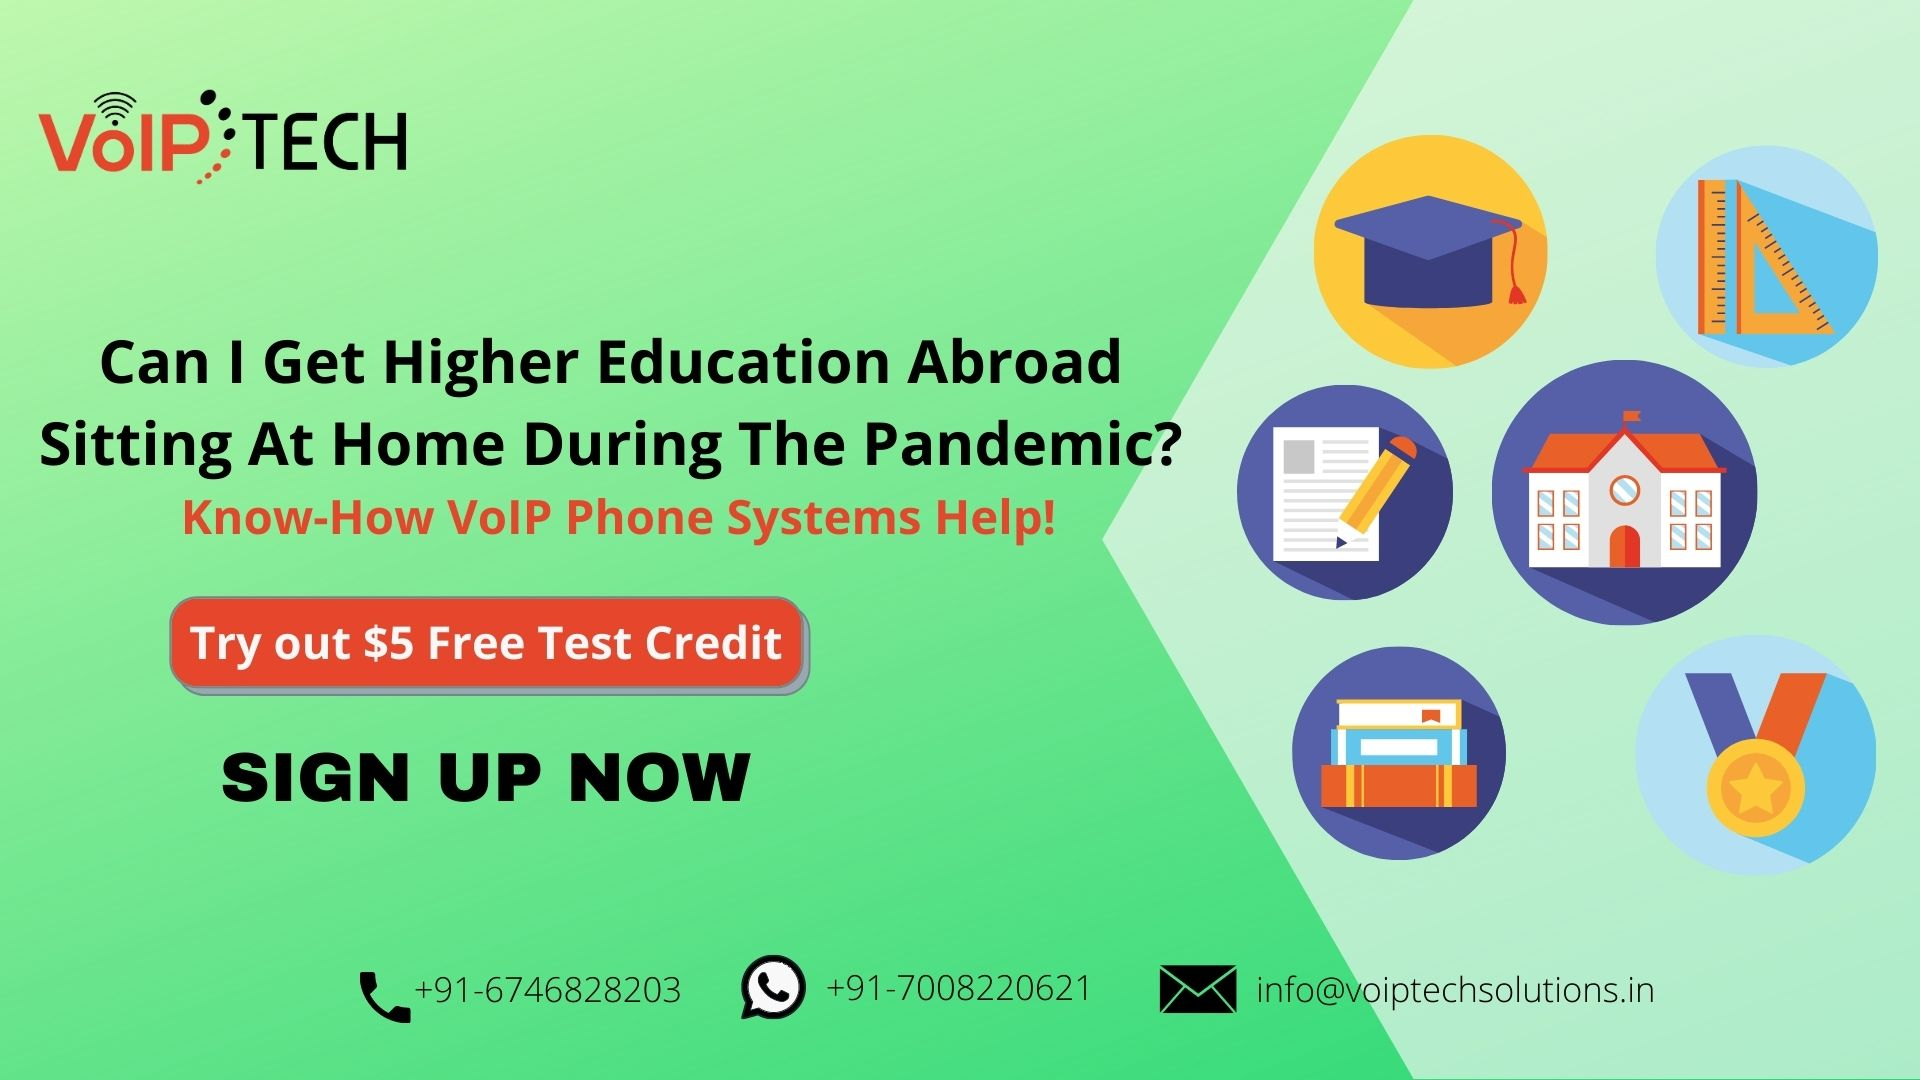 VoIP Phone Systems, Can I Get Higher Education Abroad Sitting At Home During The Pandemic? Know-How VoIP Phone Systems Help!, VoIP tech solutions, vici dialer, virtual number, Voip Providers, voip services in india, best sip provider, business voip providers, VoIP Phone Numbers, voip minutes provider, top voip providers, voip minutes, International VoIP Provider